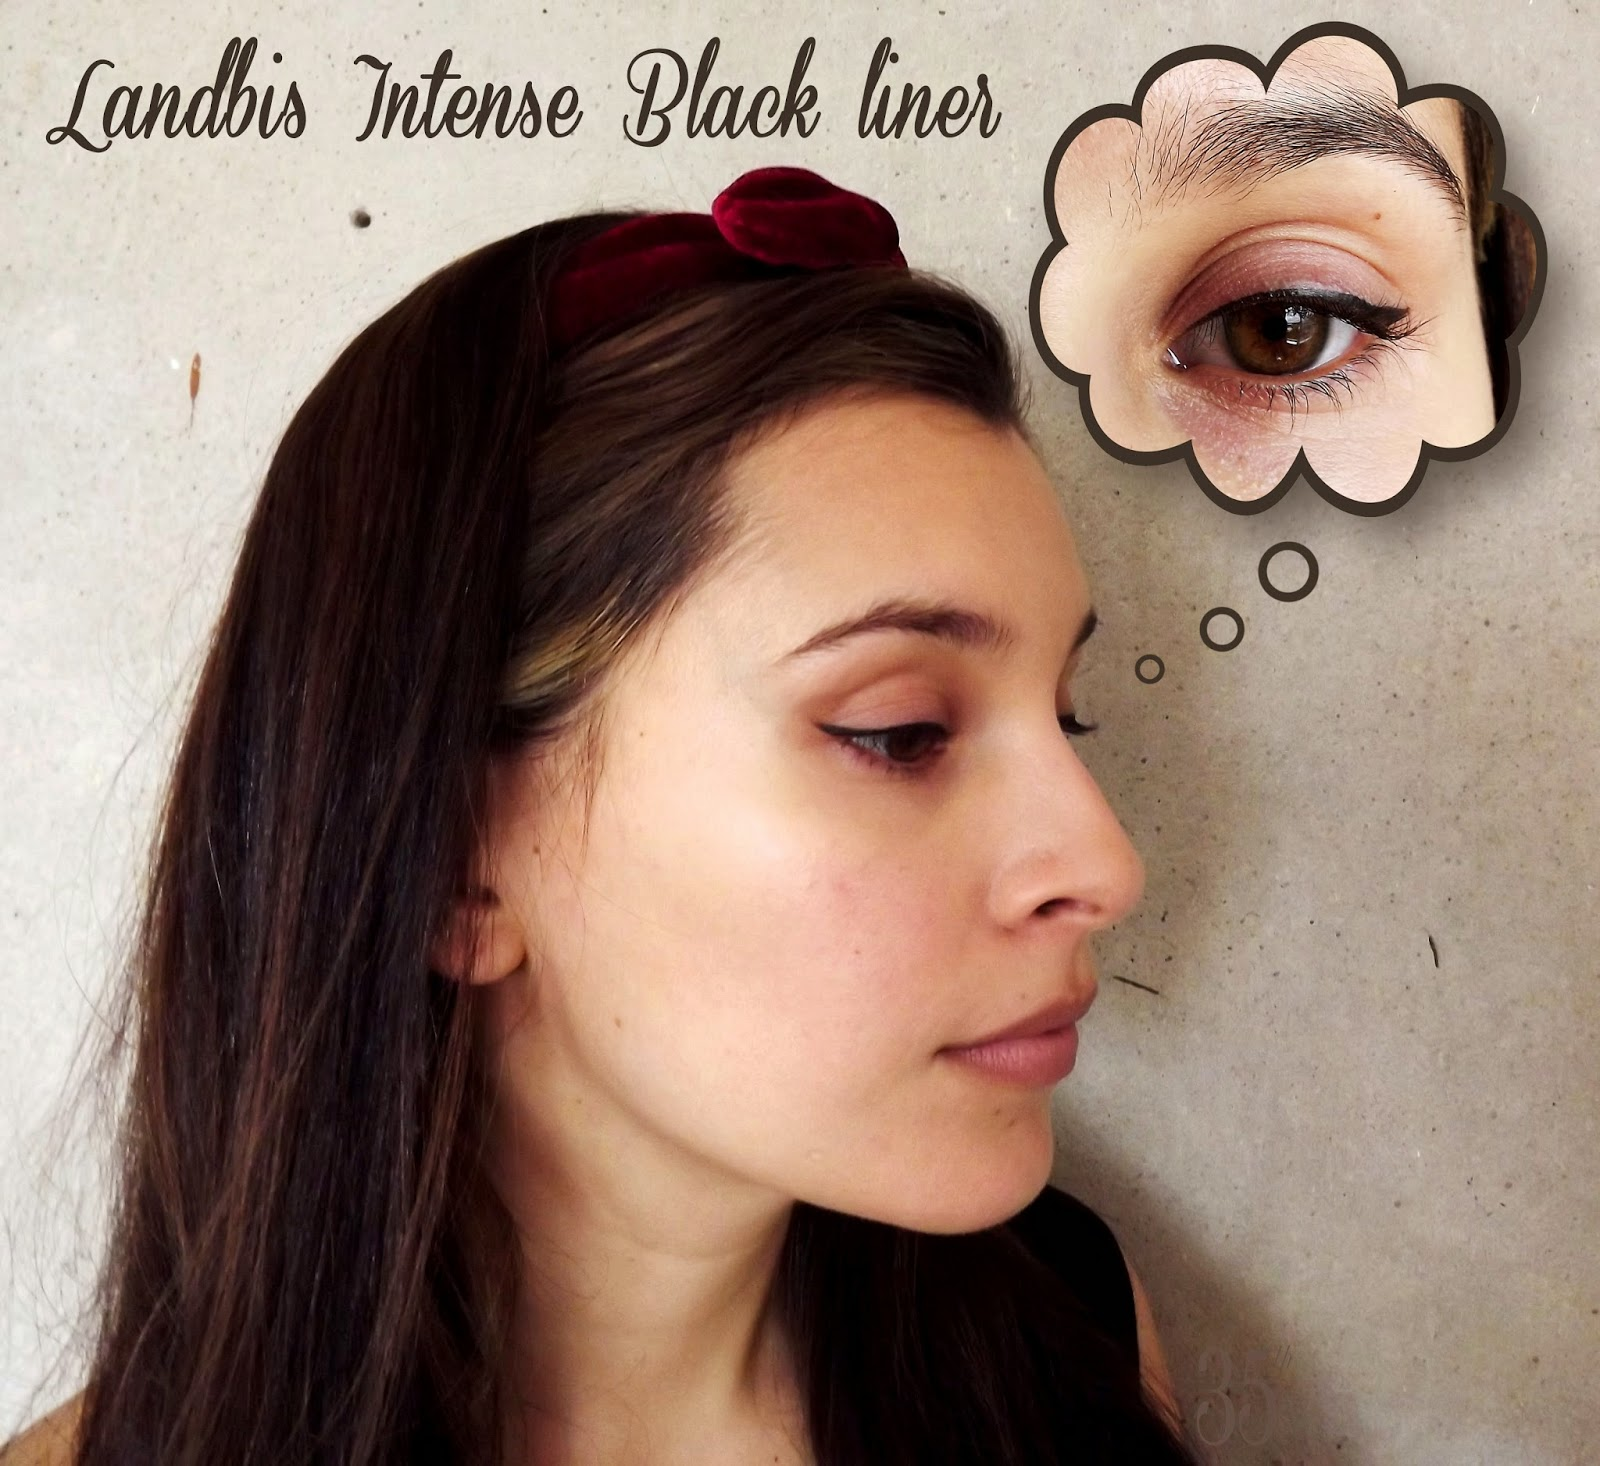 Landbis Hyper Sharp Intense Black Liner review